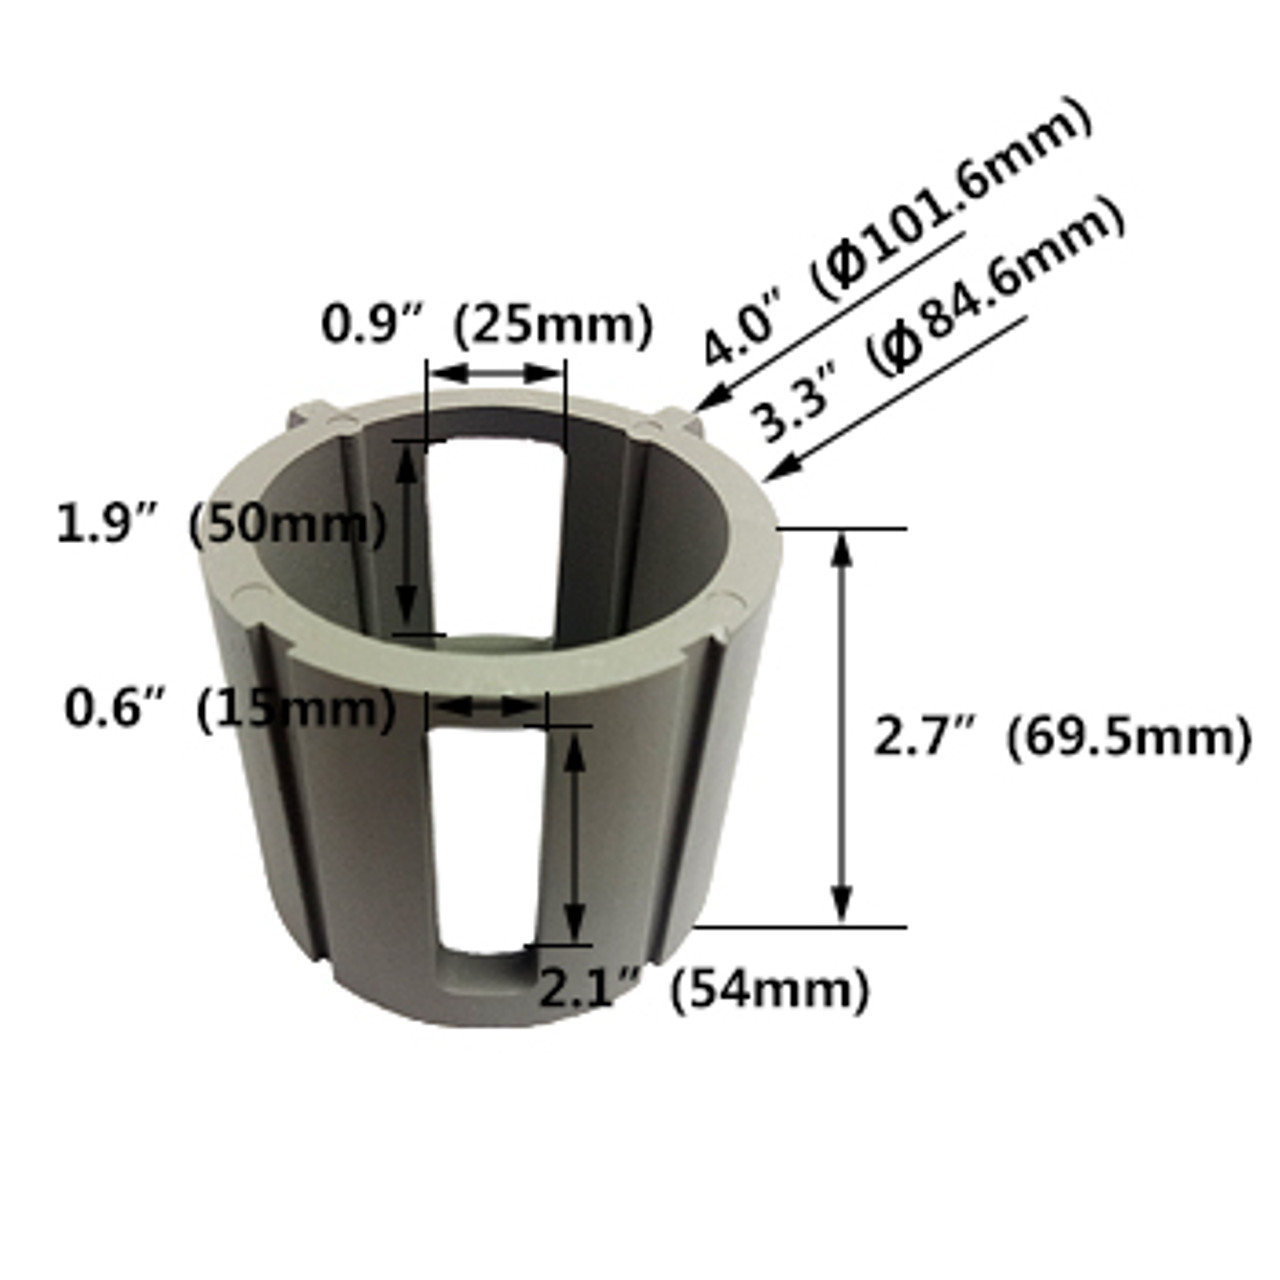 Round Post Top Adaptor for LED Street Light insert dimensions